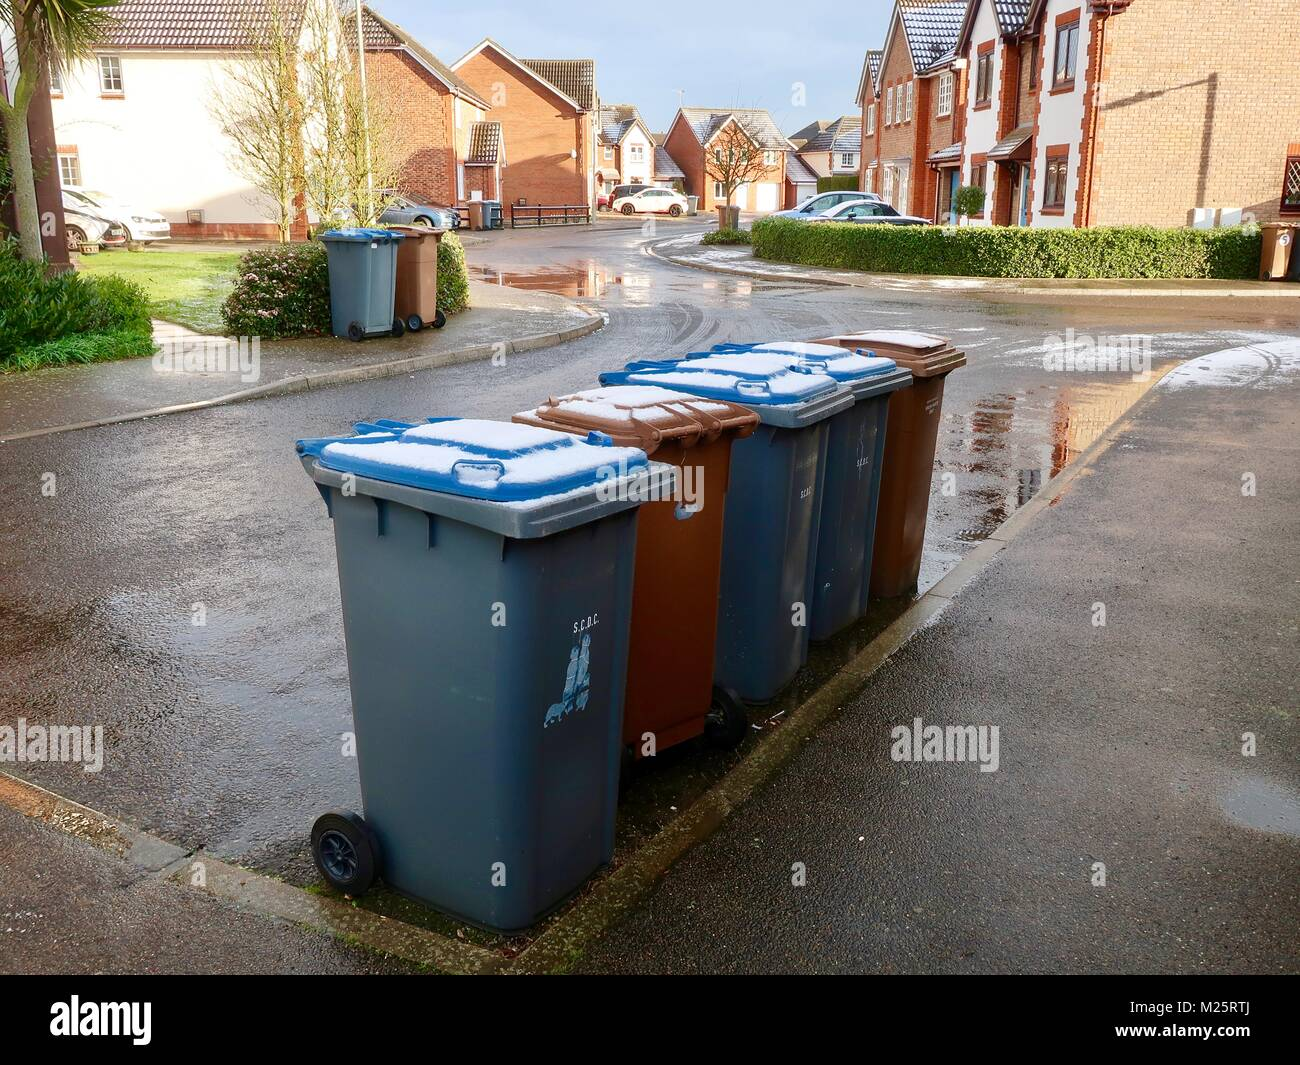 wheely bins uk stock photos wheely bins uk stock images. Black Bedroom Furniture Sets. Home Design Ideas